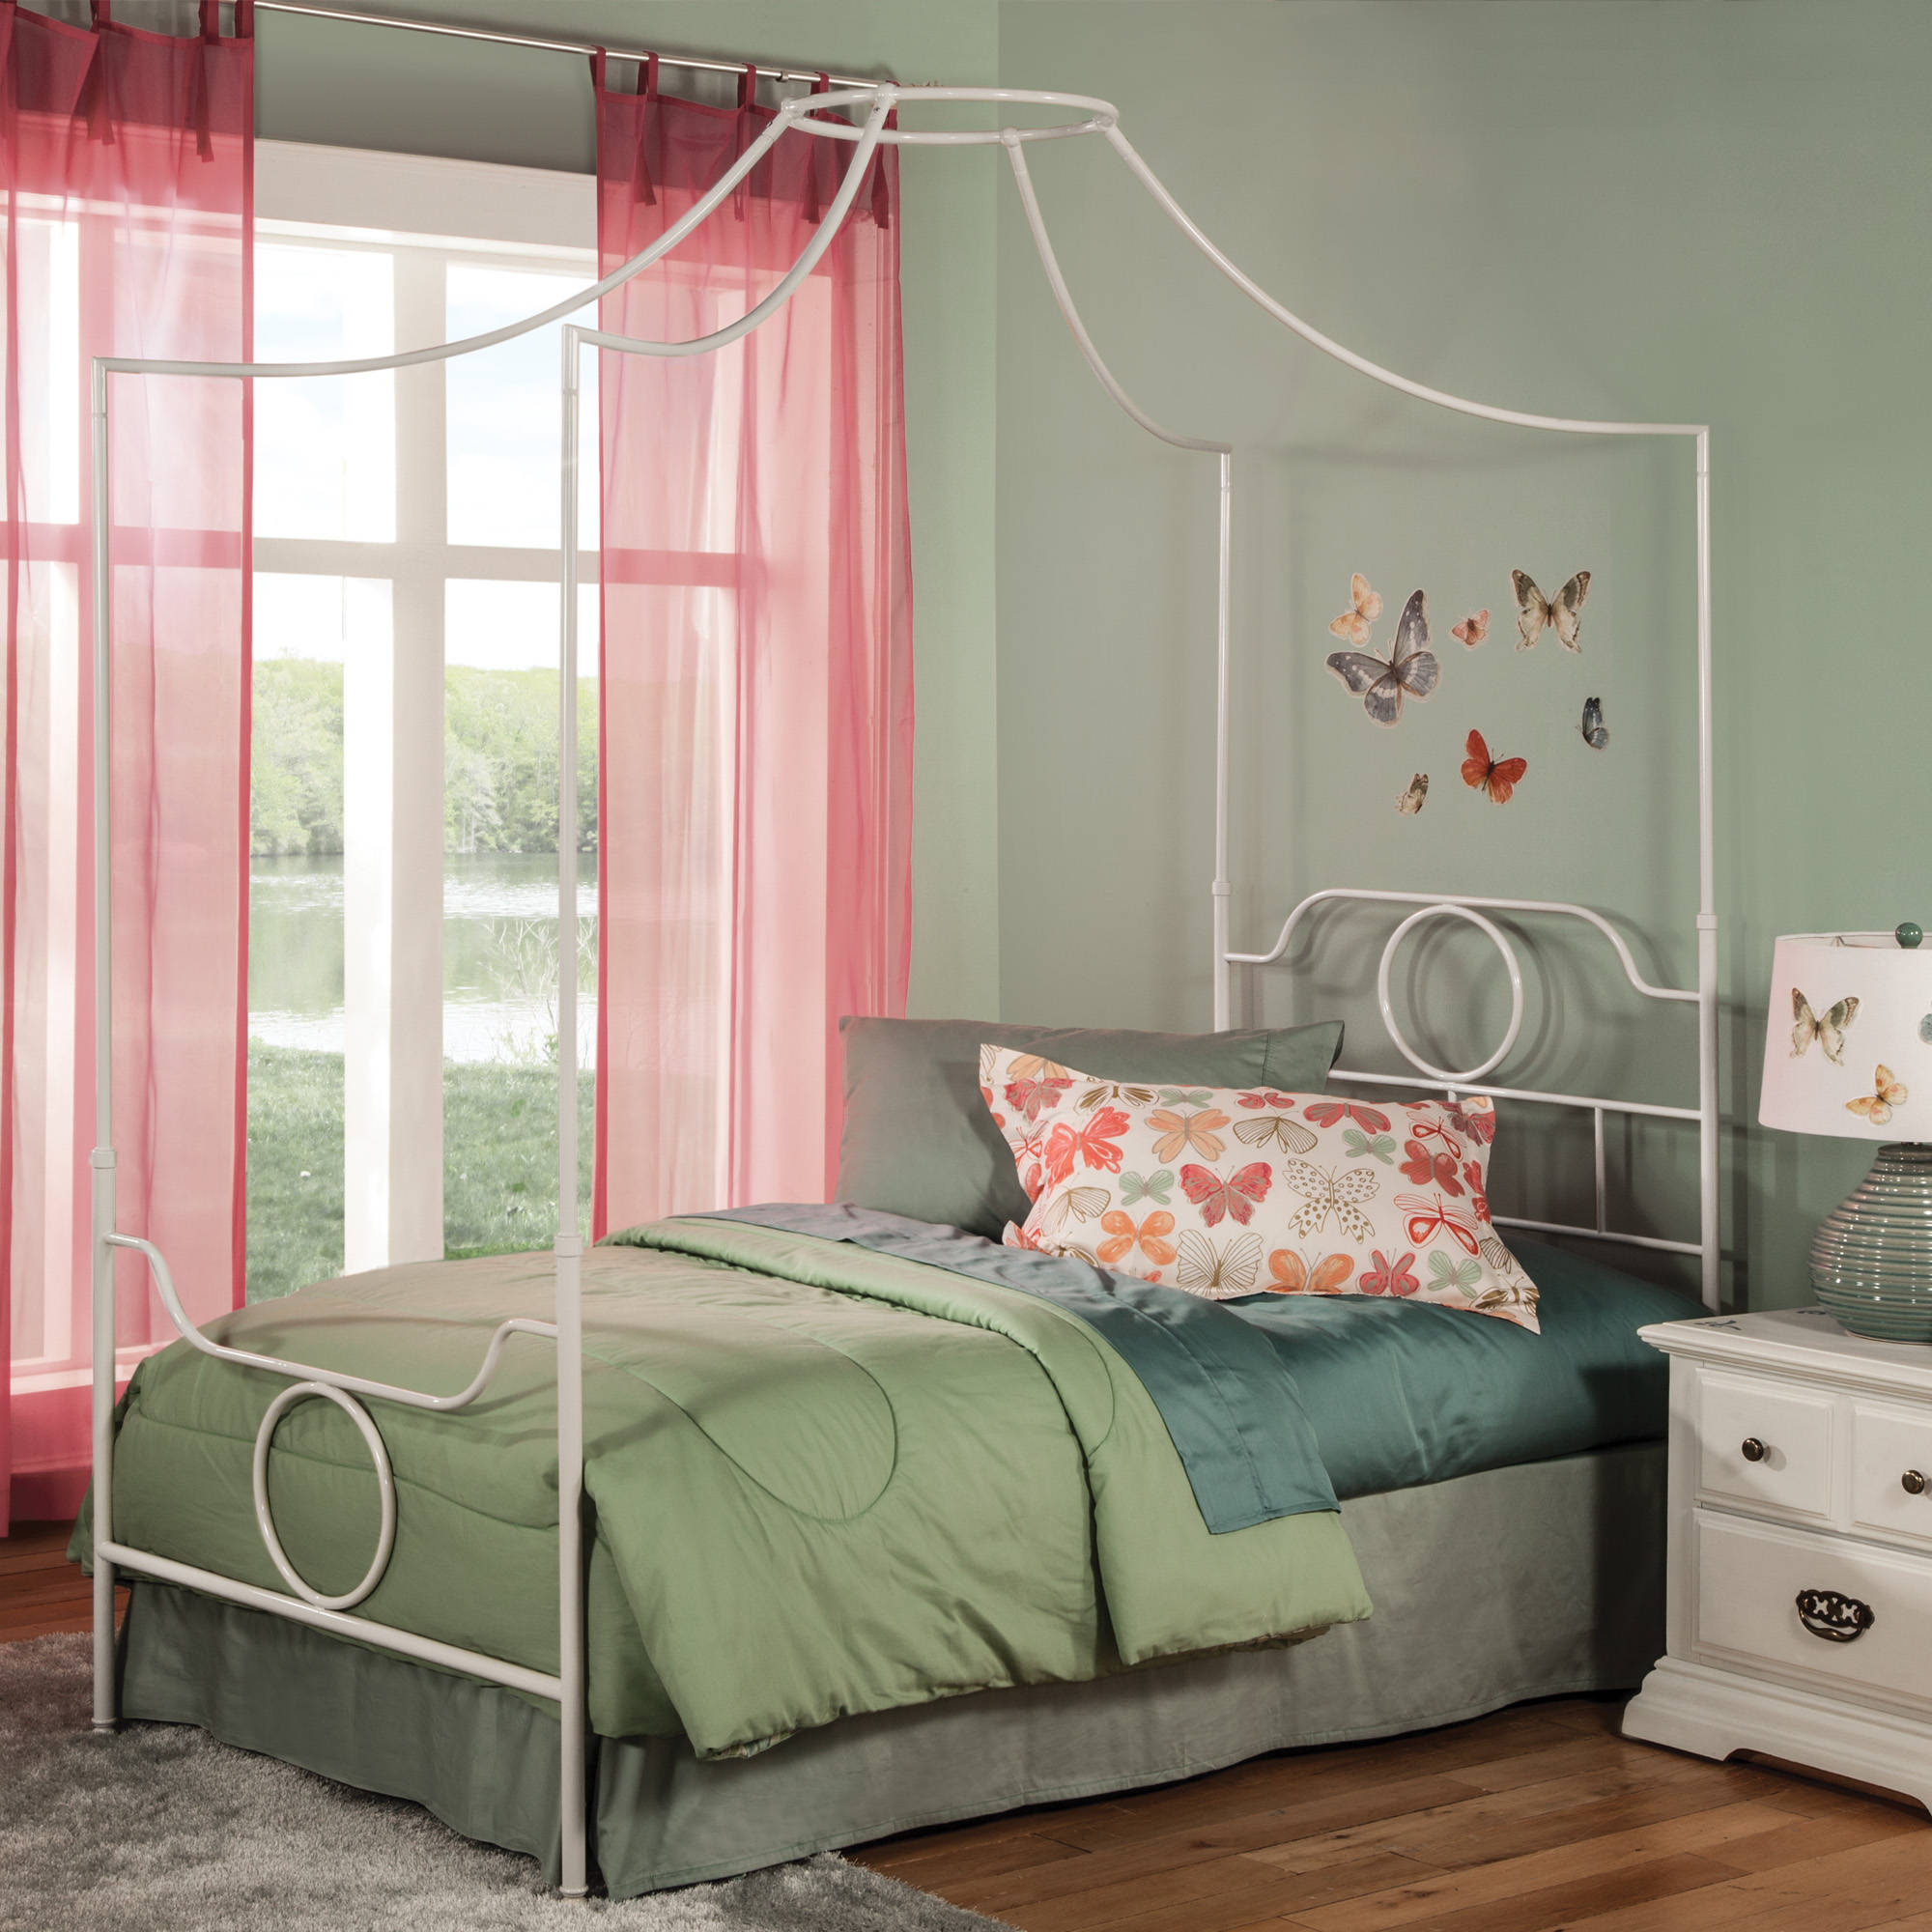 ... White Kids Twin Canopy Bed Click To Enlarge ... & Leggett and Platt Emsworth White Kids Twin Canopy Bed | The Classy ...